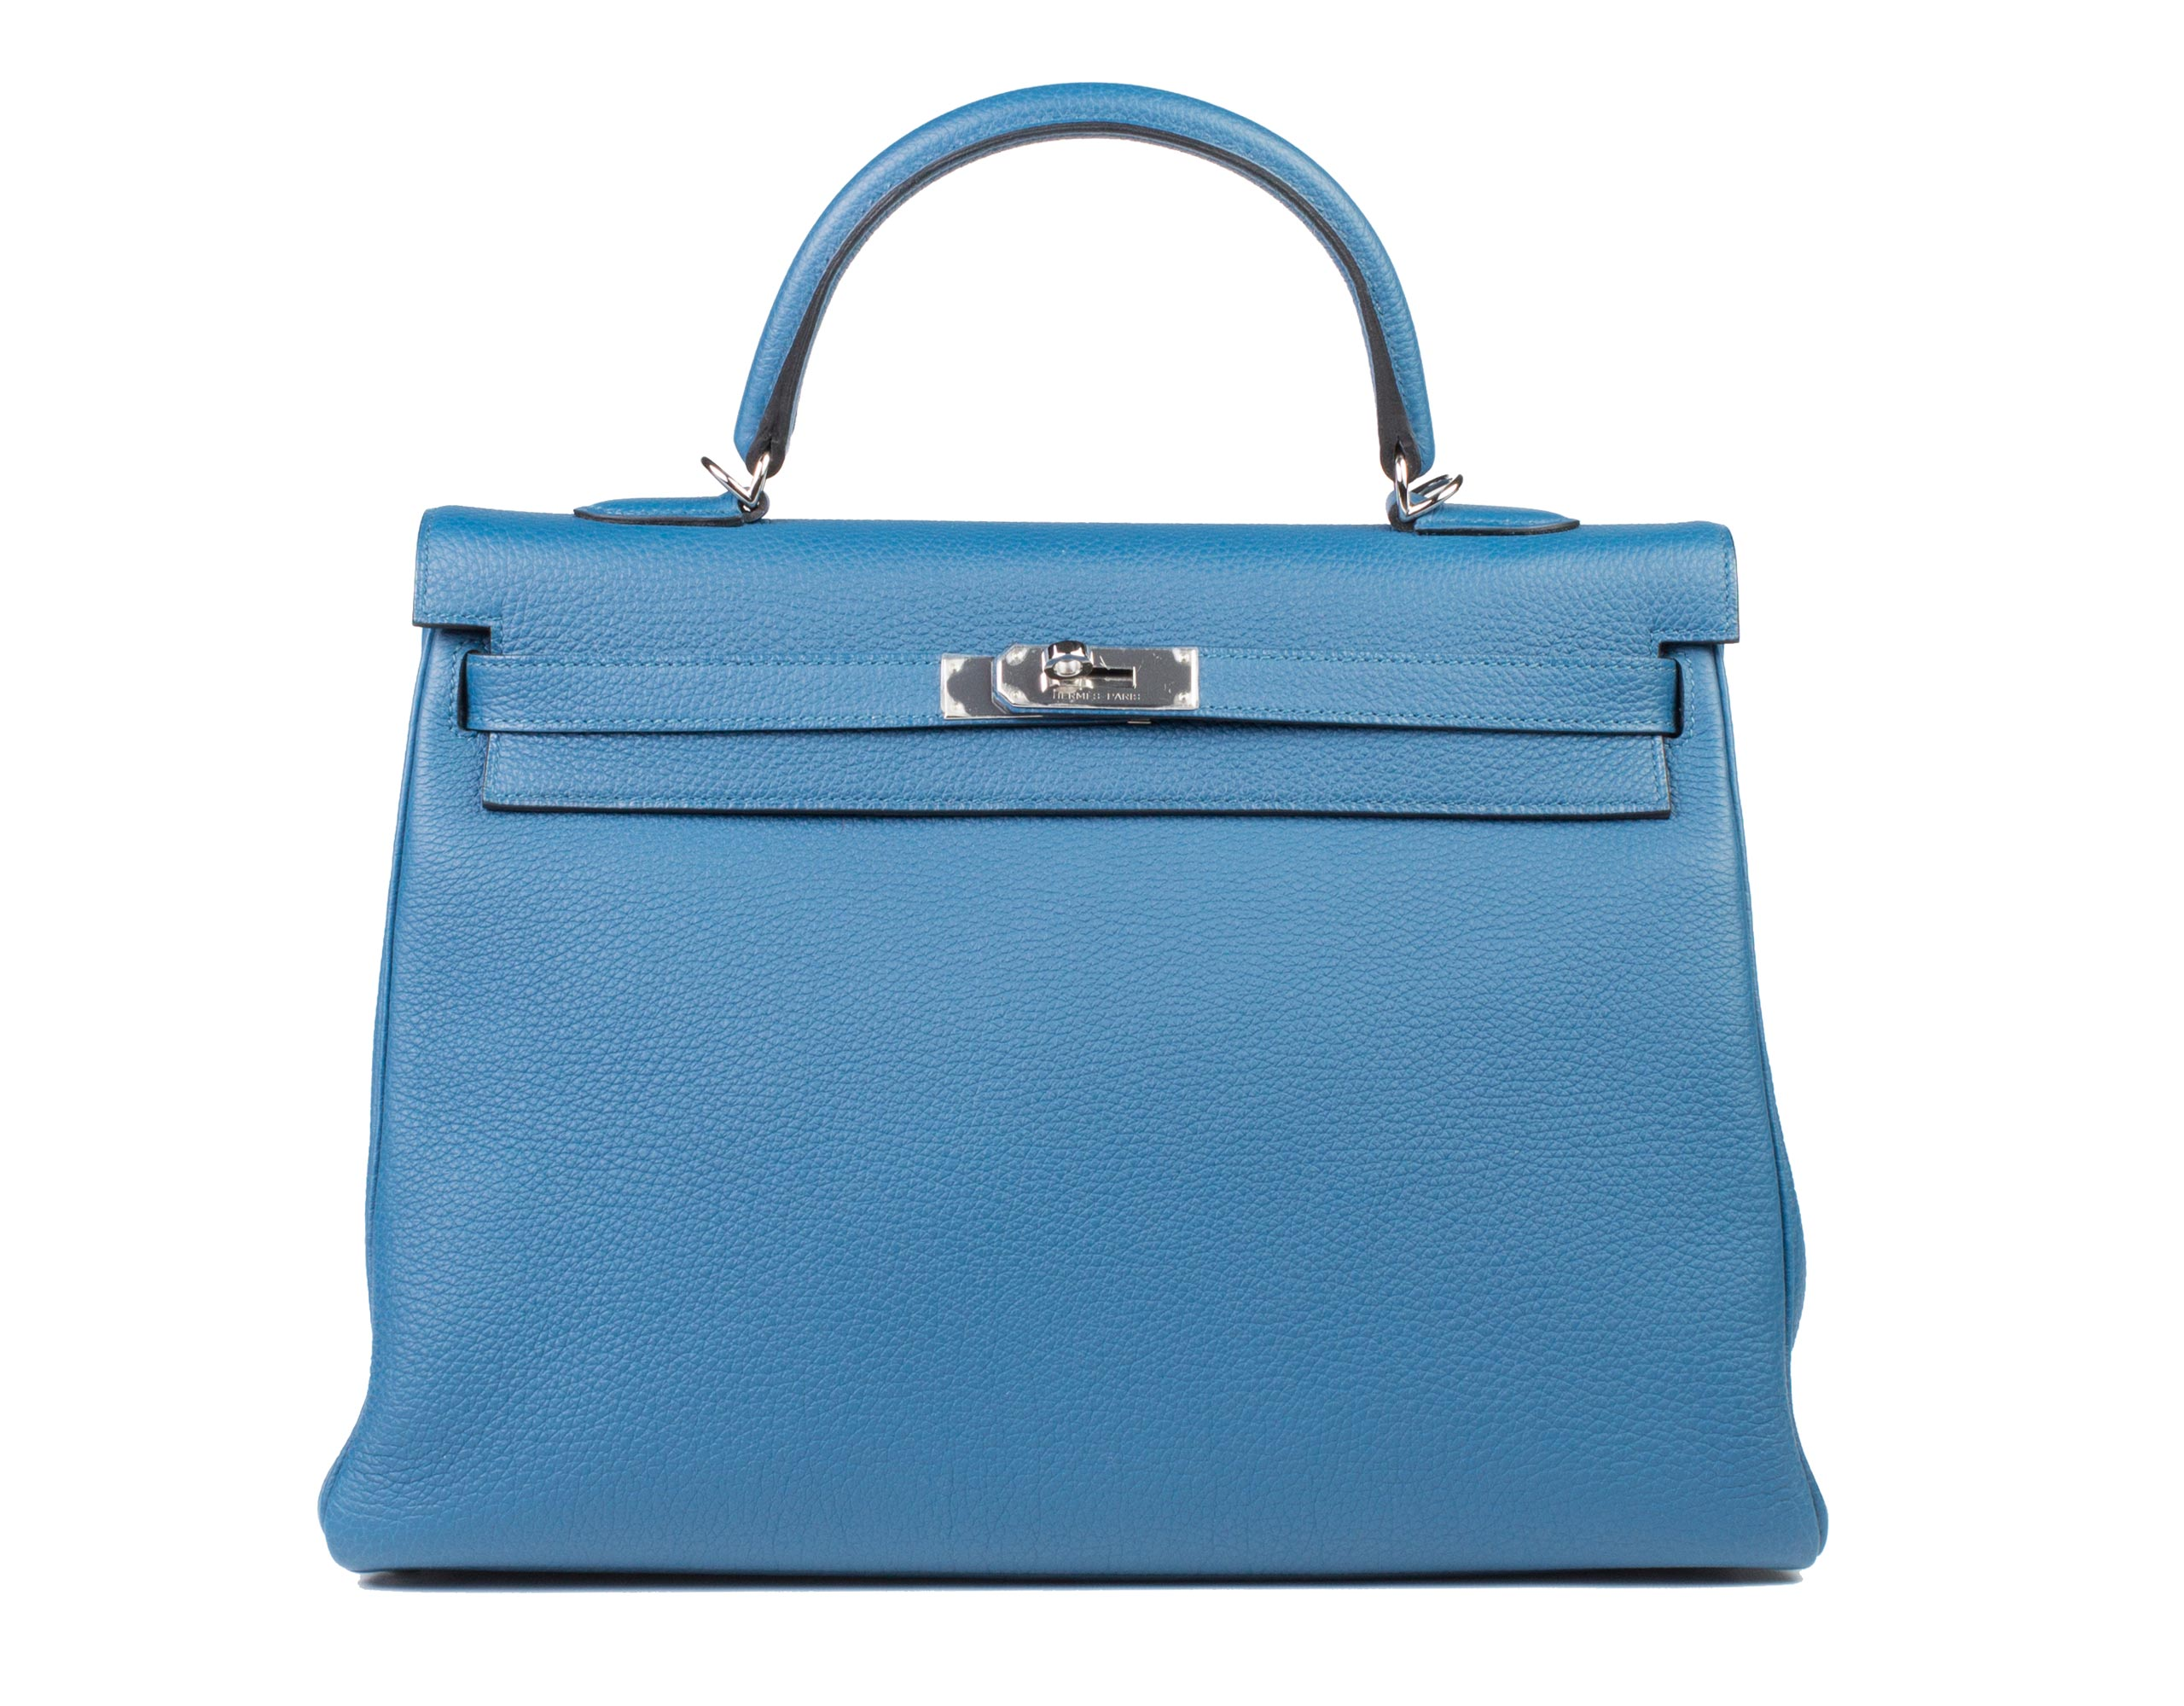 Hermes Bag Kelly Blue Galice Togo 35cm K75 Front